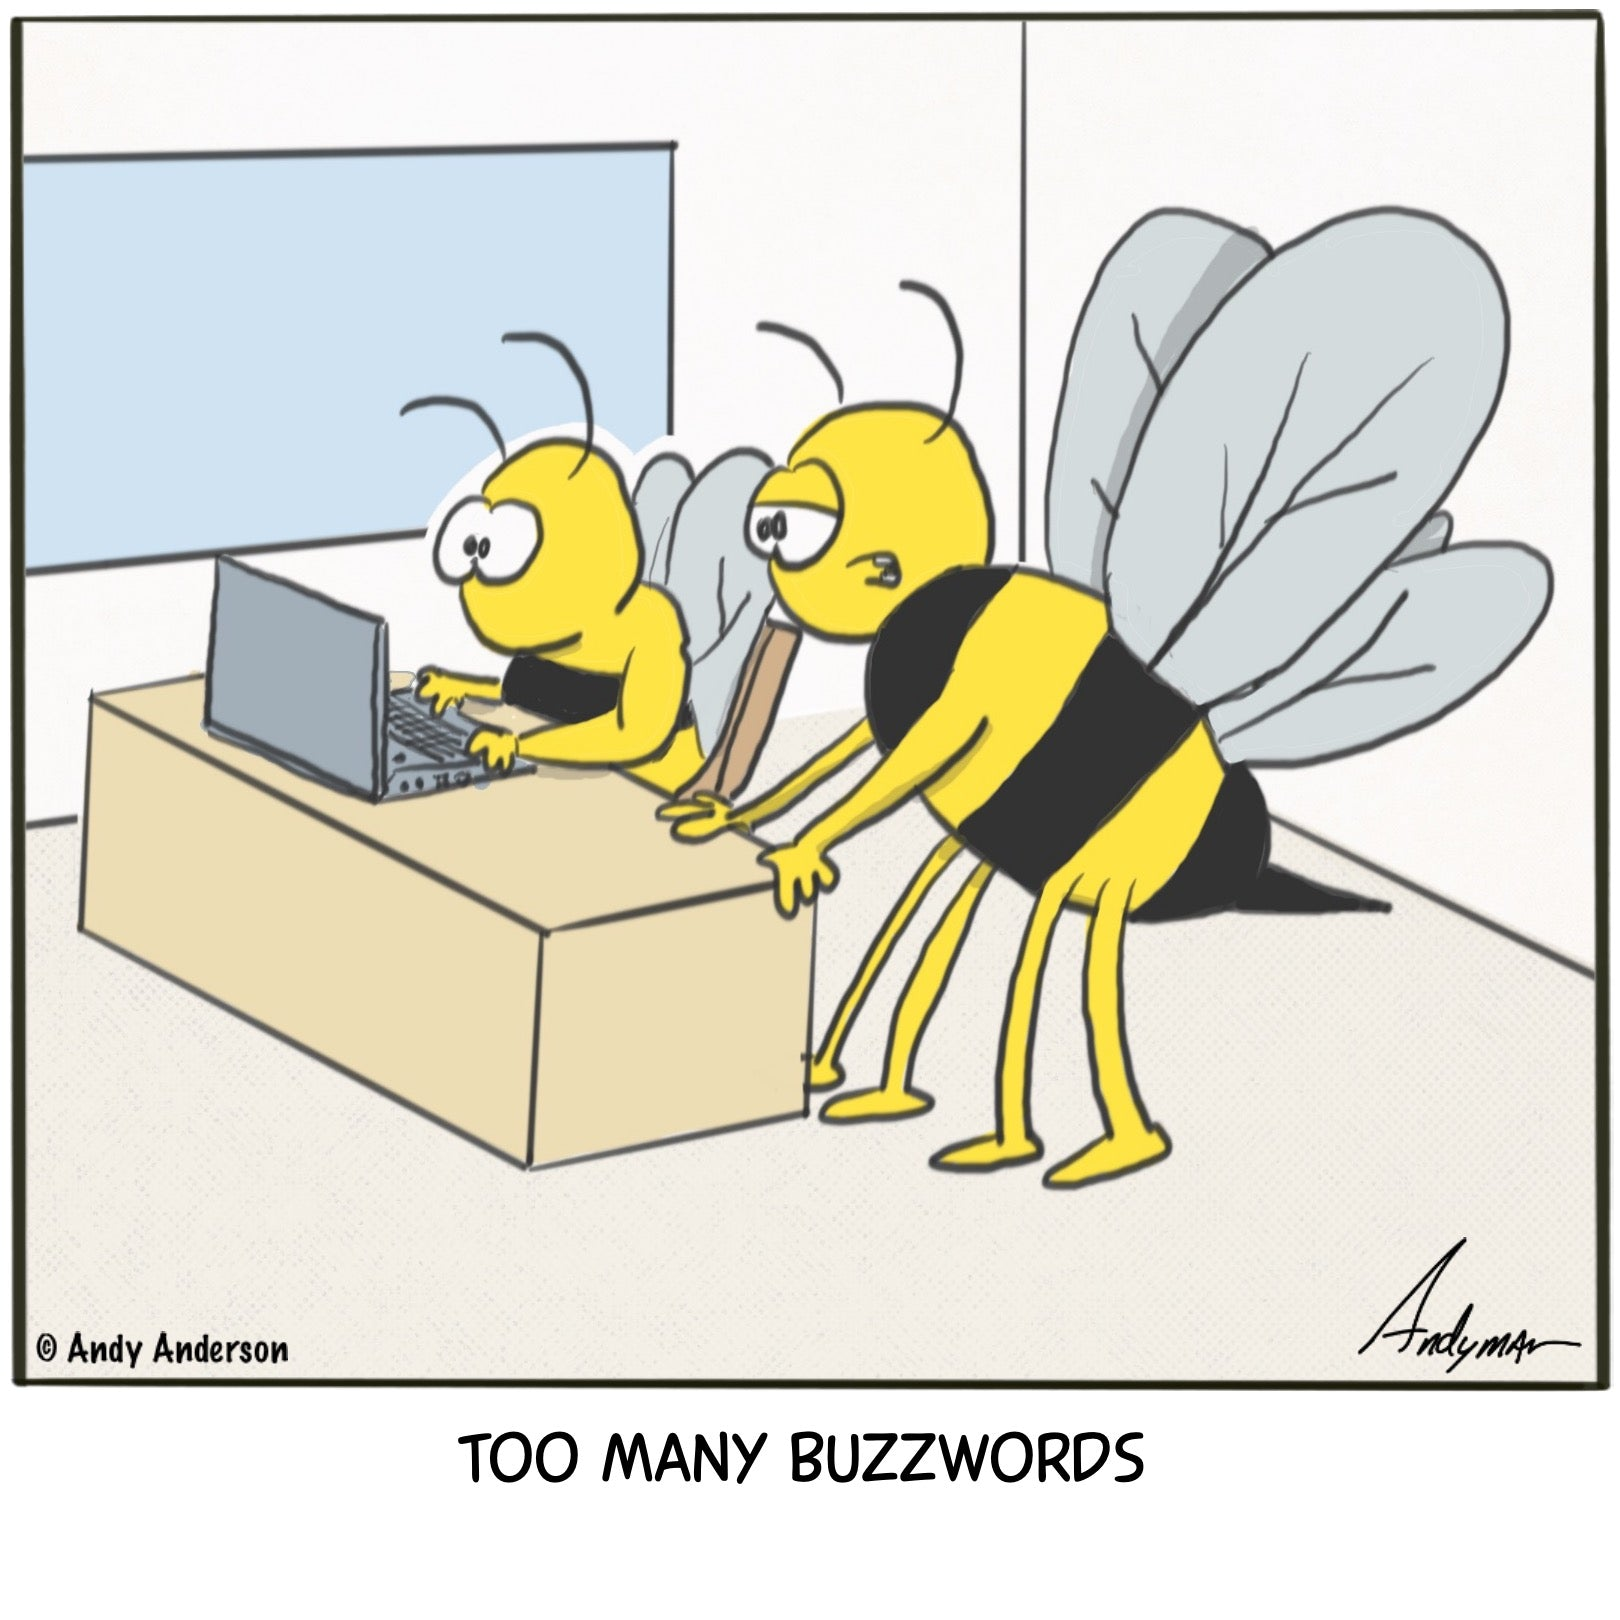 Cartoon about bees using too many buzzwords by Andy Anderson